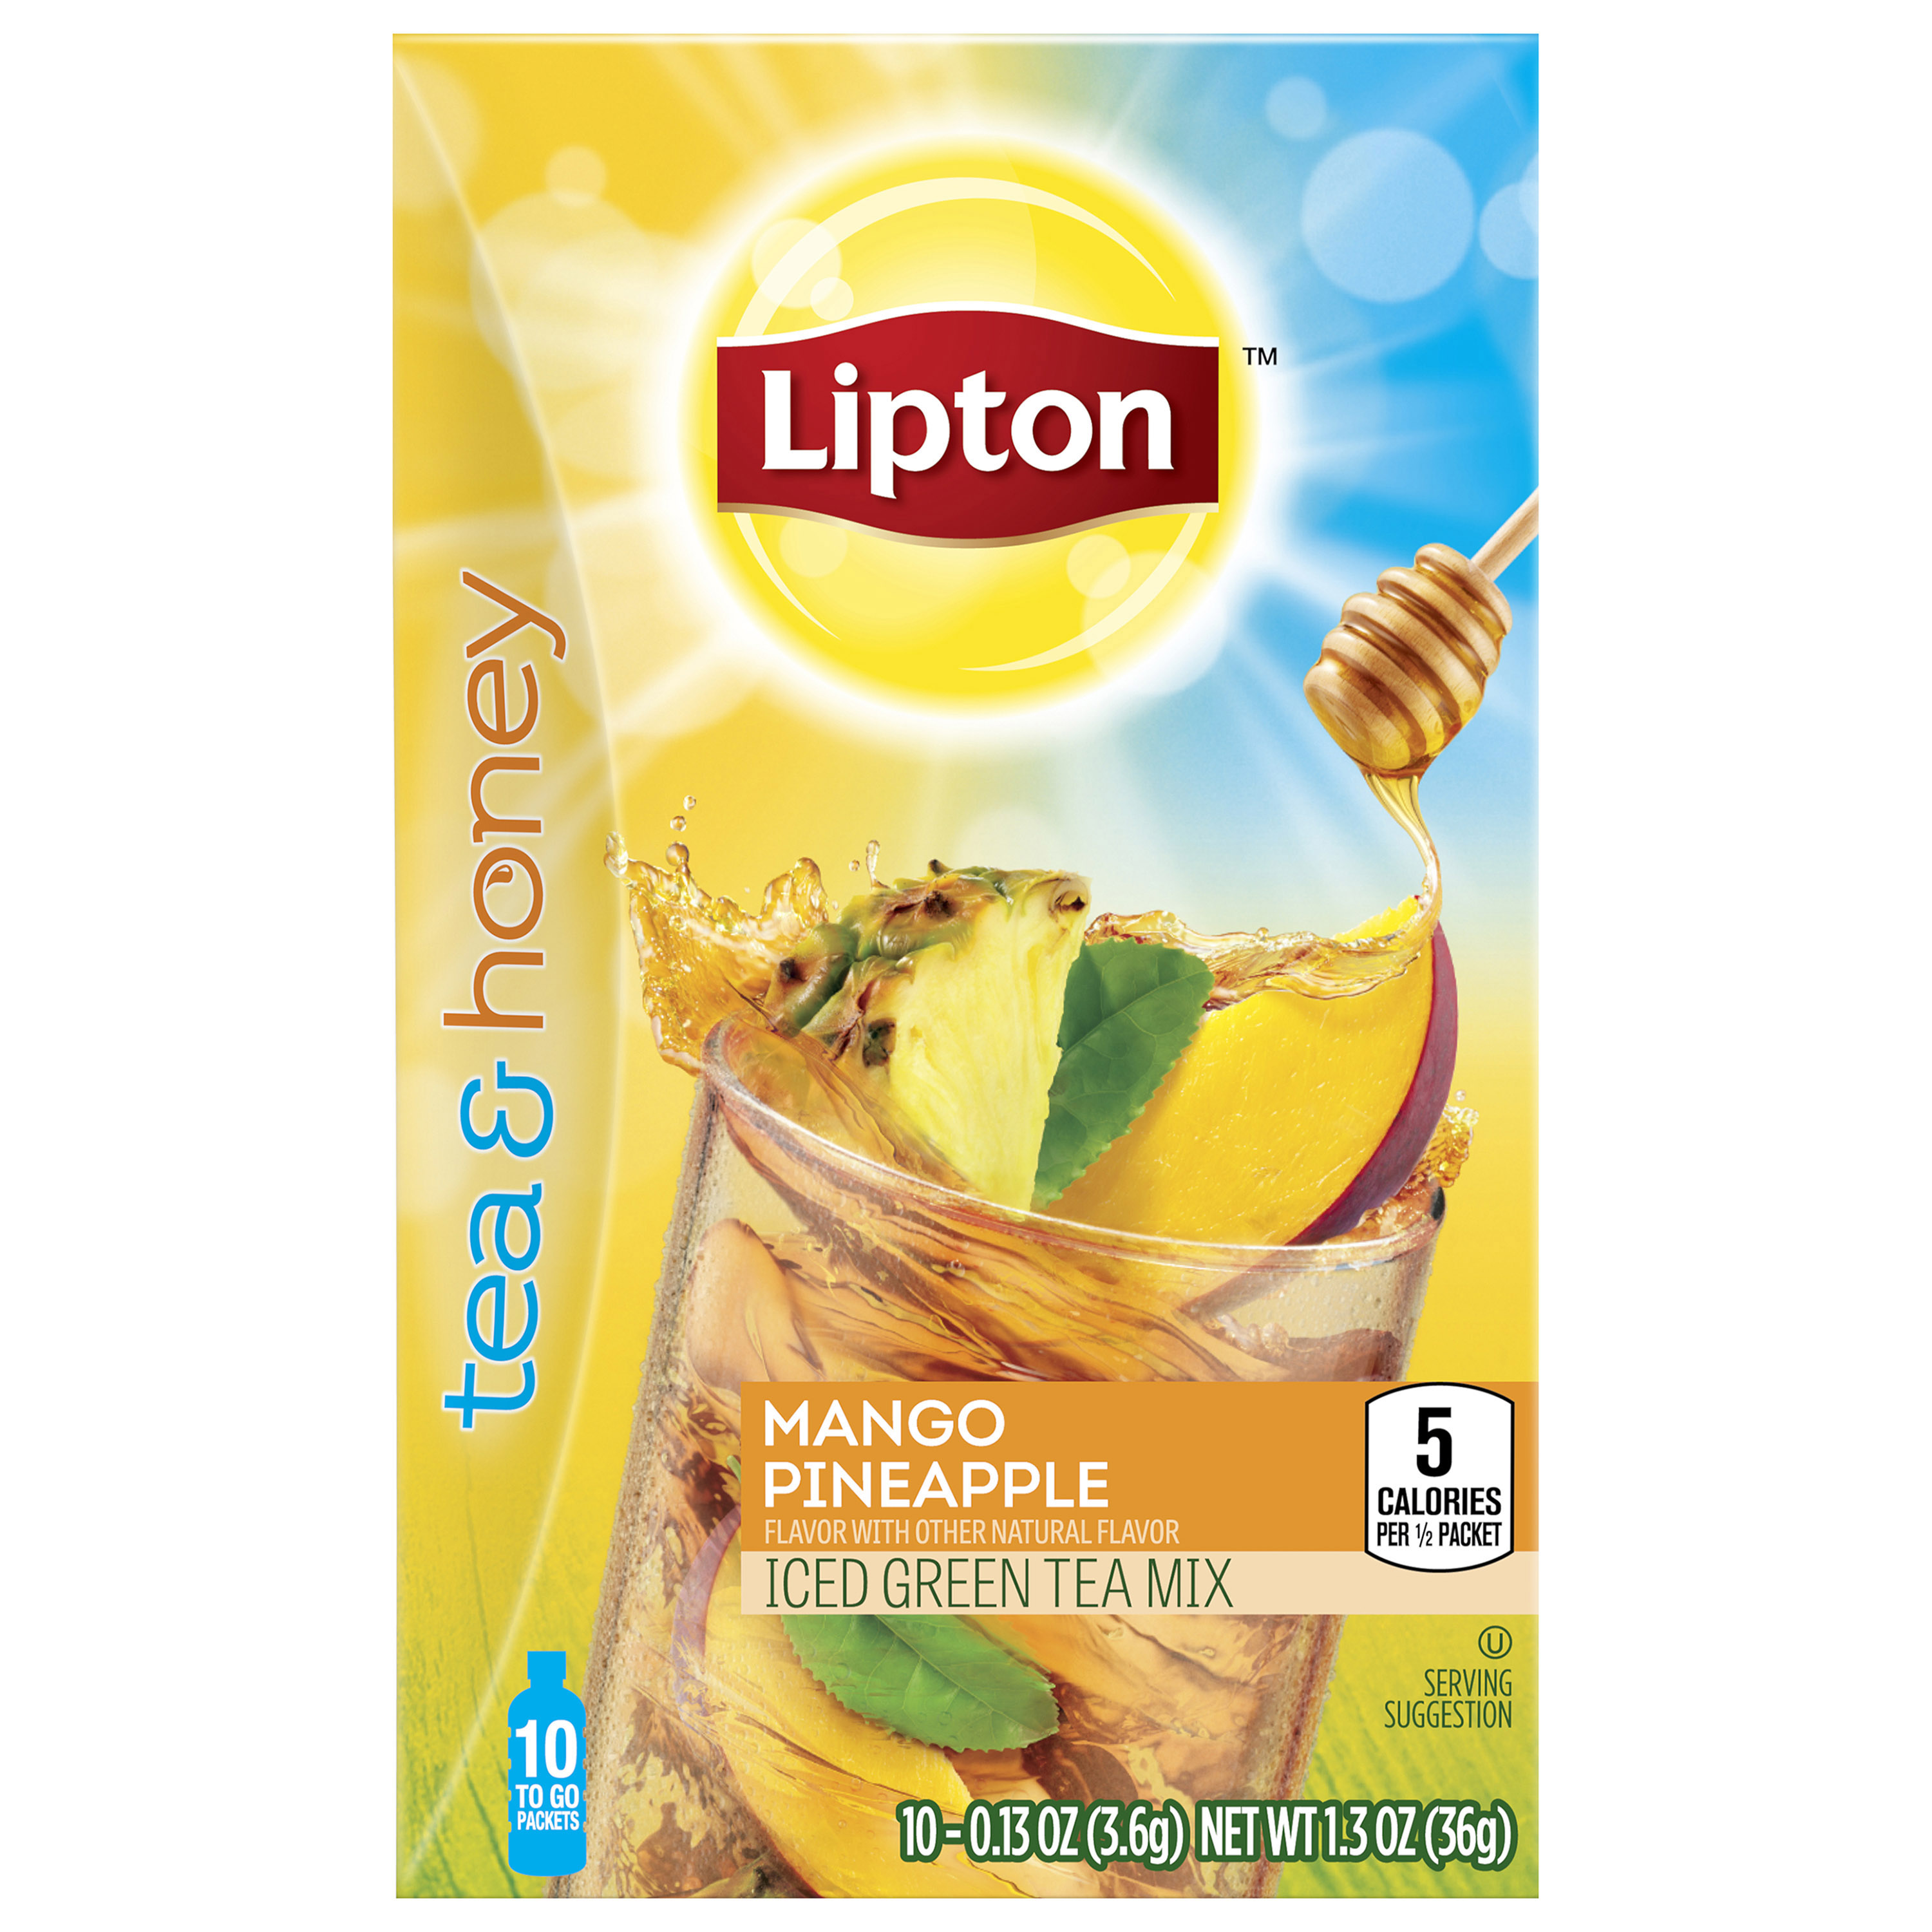 Lipton Mango Pineapple Iced Green Tea To-Go Packets, 10 ct